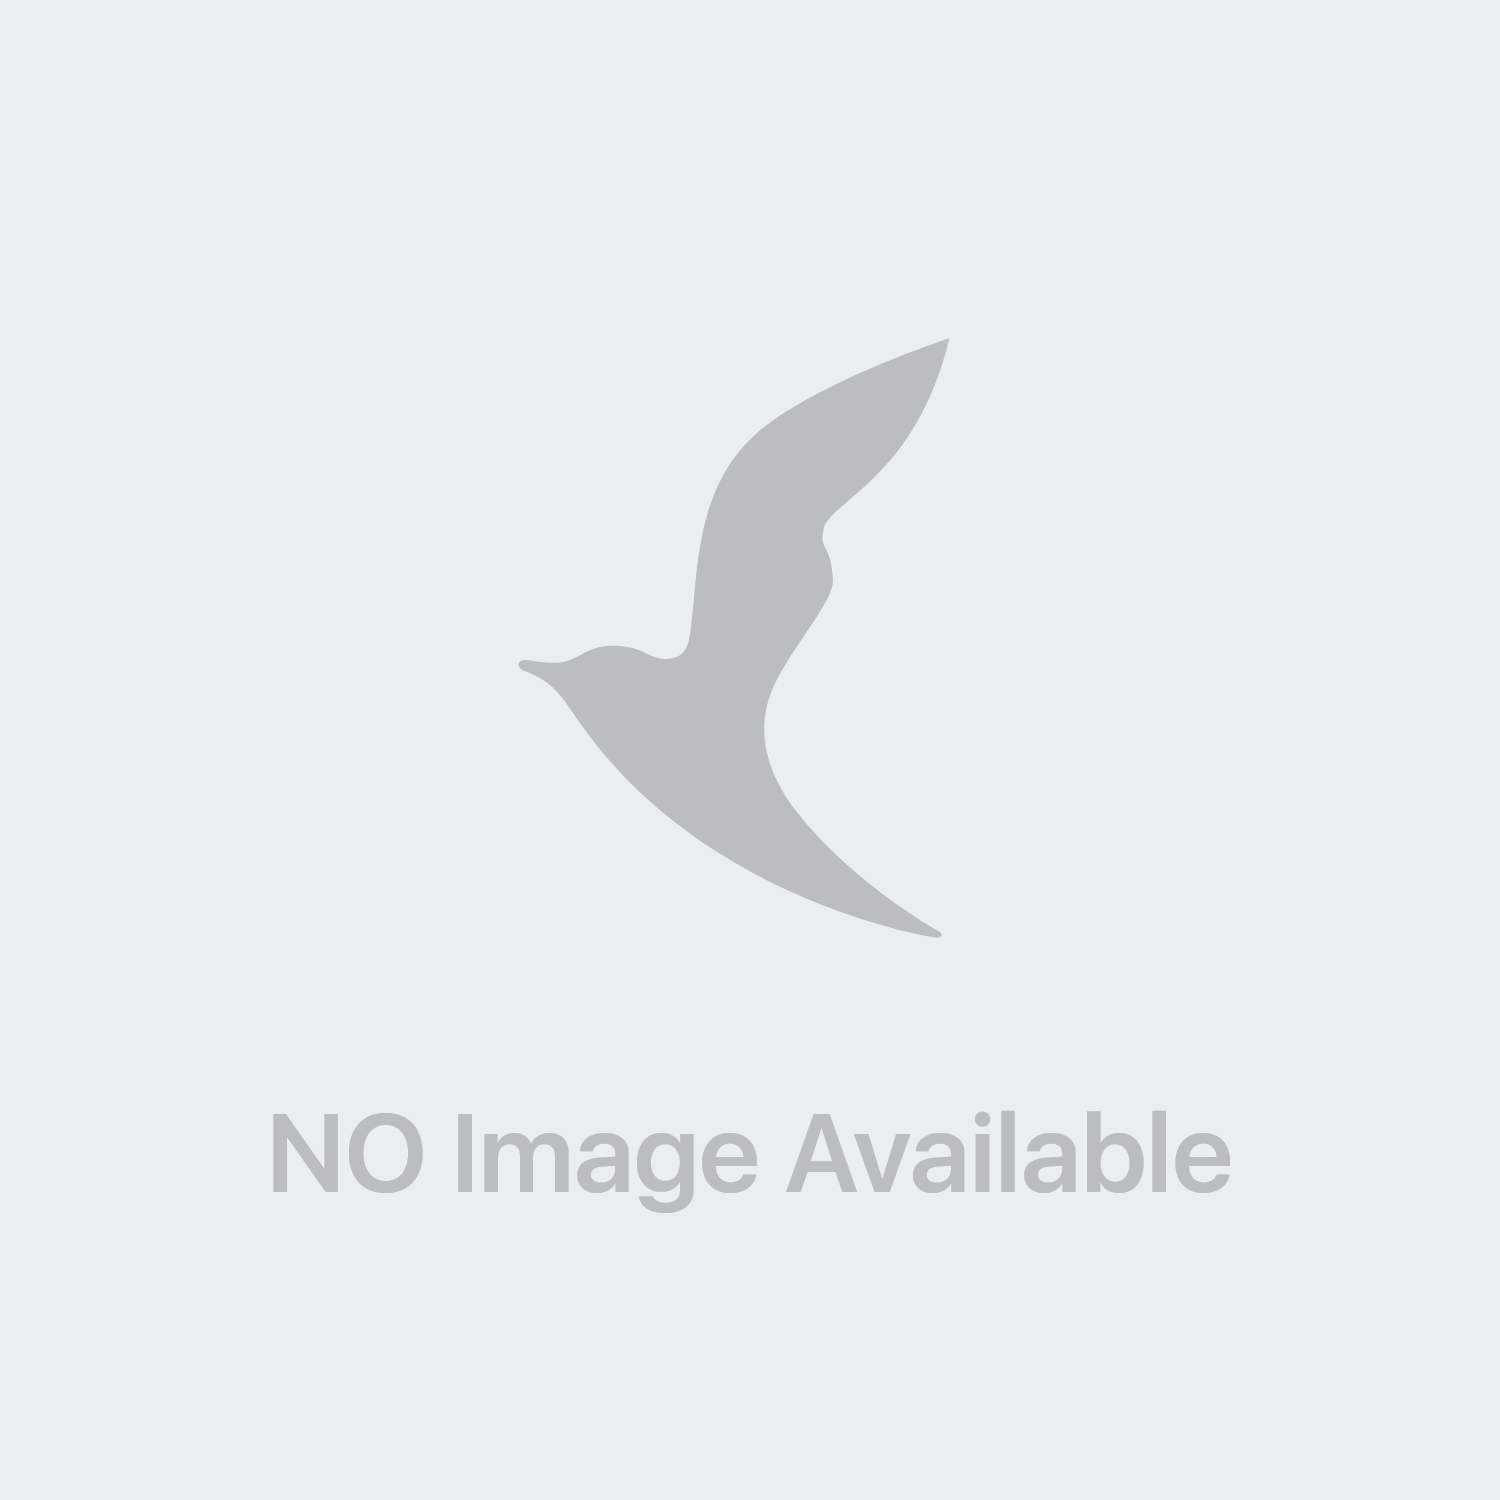 Cobaforte 20 Capsule 2,5 mg